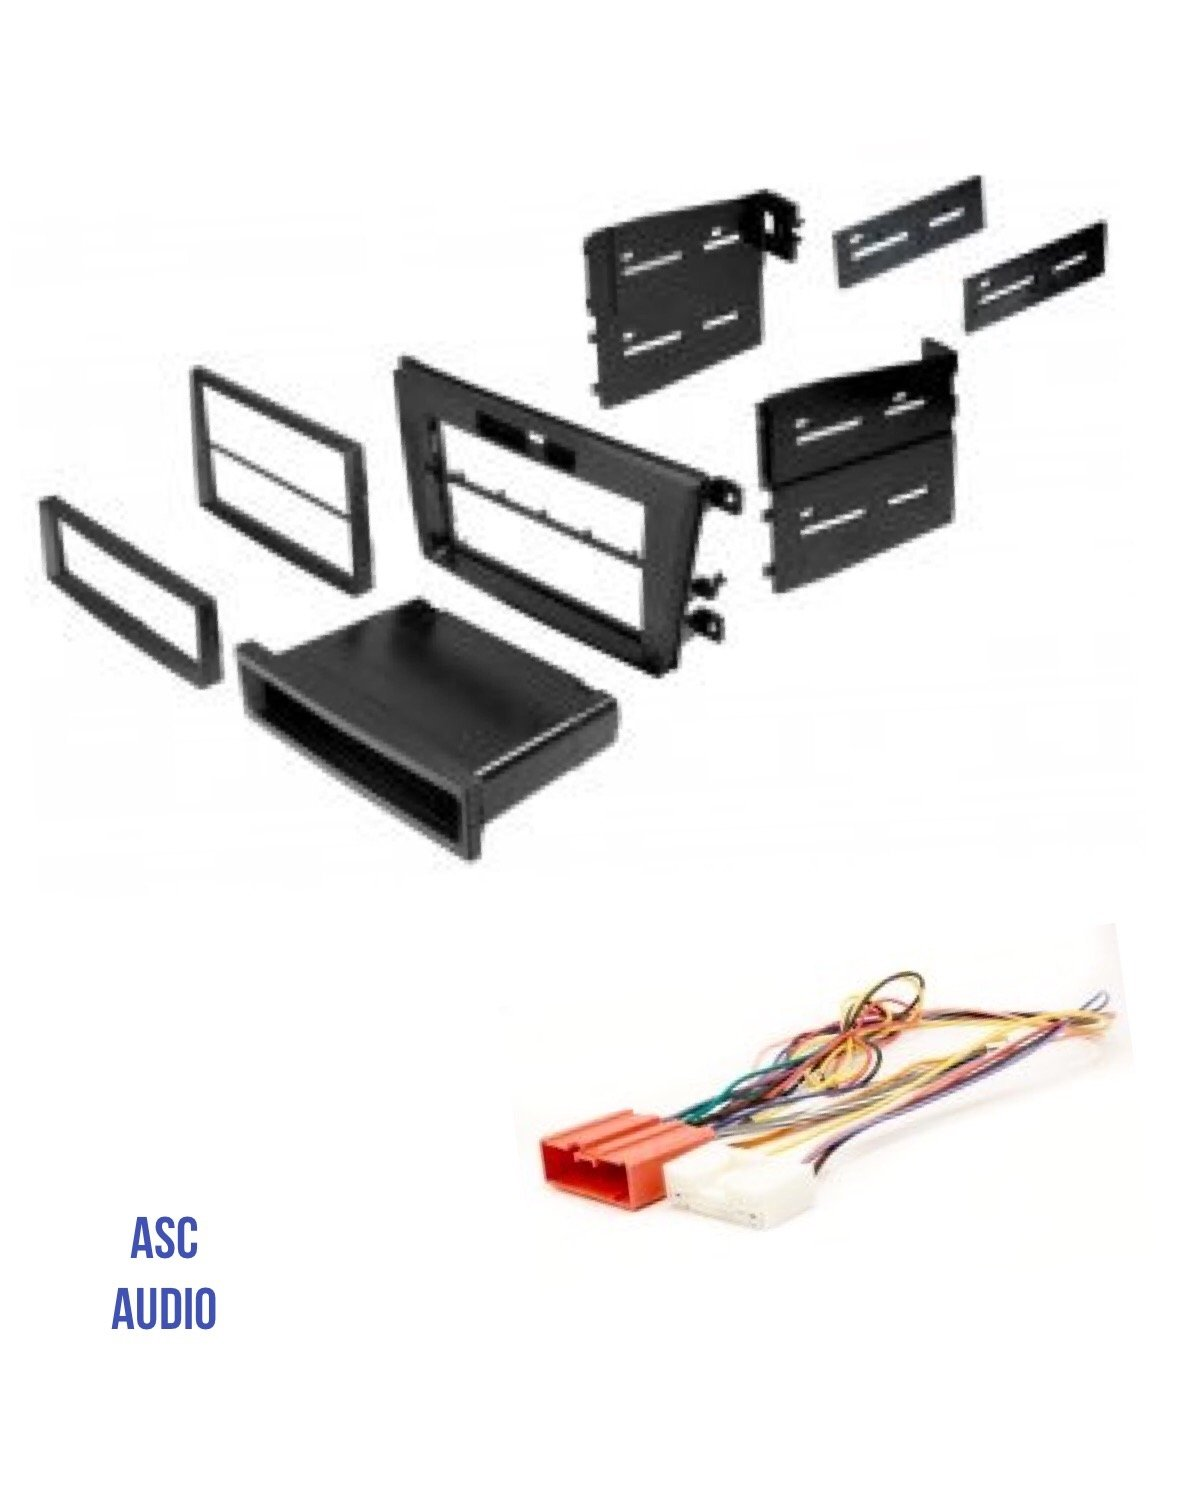 Cheap Installing Wire Balustrade Find How To Build A Harness Get Quotations Asc Audio Car Stereo Radio Install Dash Mount Kit And For An Aftermarket